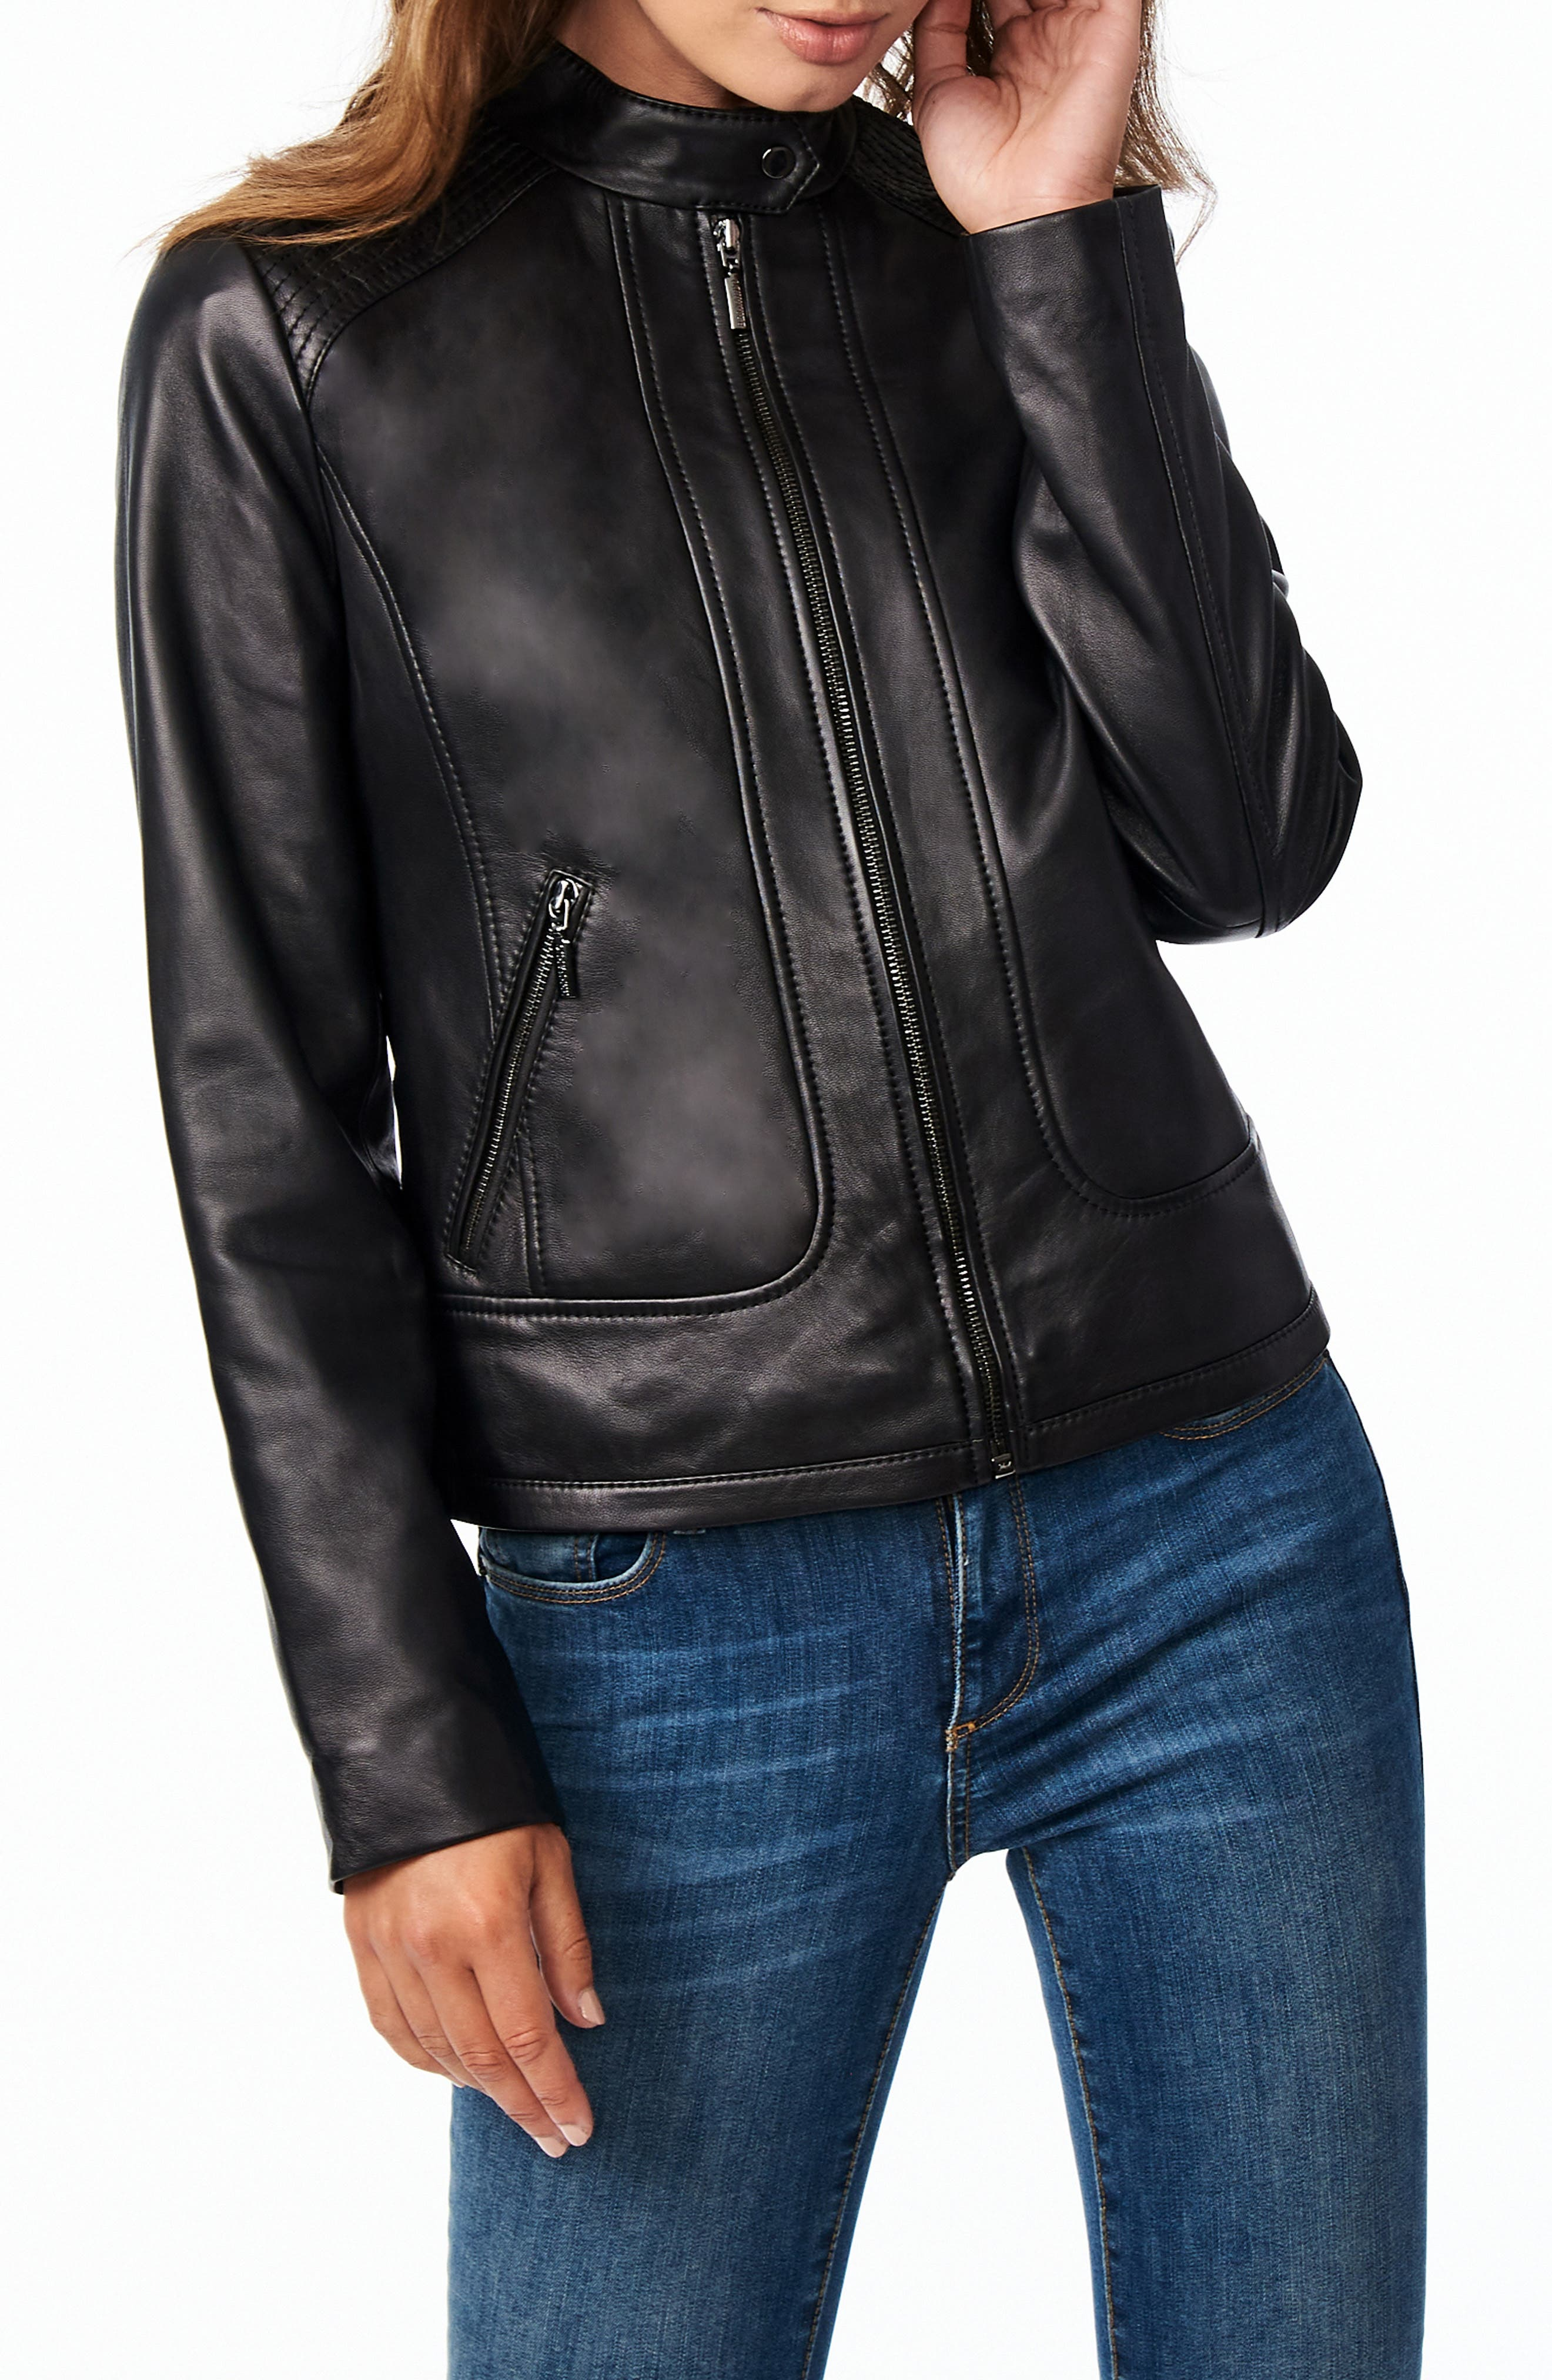 A snap band collar and reinforced stitches on the shoulders and back yoke highlight the moto-racing influences of this supple sheepskin-leather jacket. Style Name: Bernardo Stitch Detail Sheepskin Leather Racer Jacket. Style Number: 6109435. Available in stores.